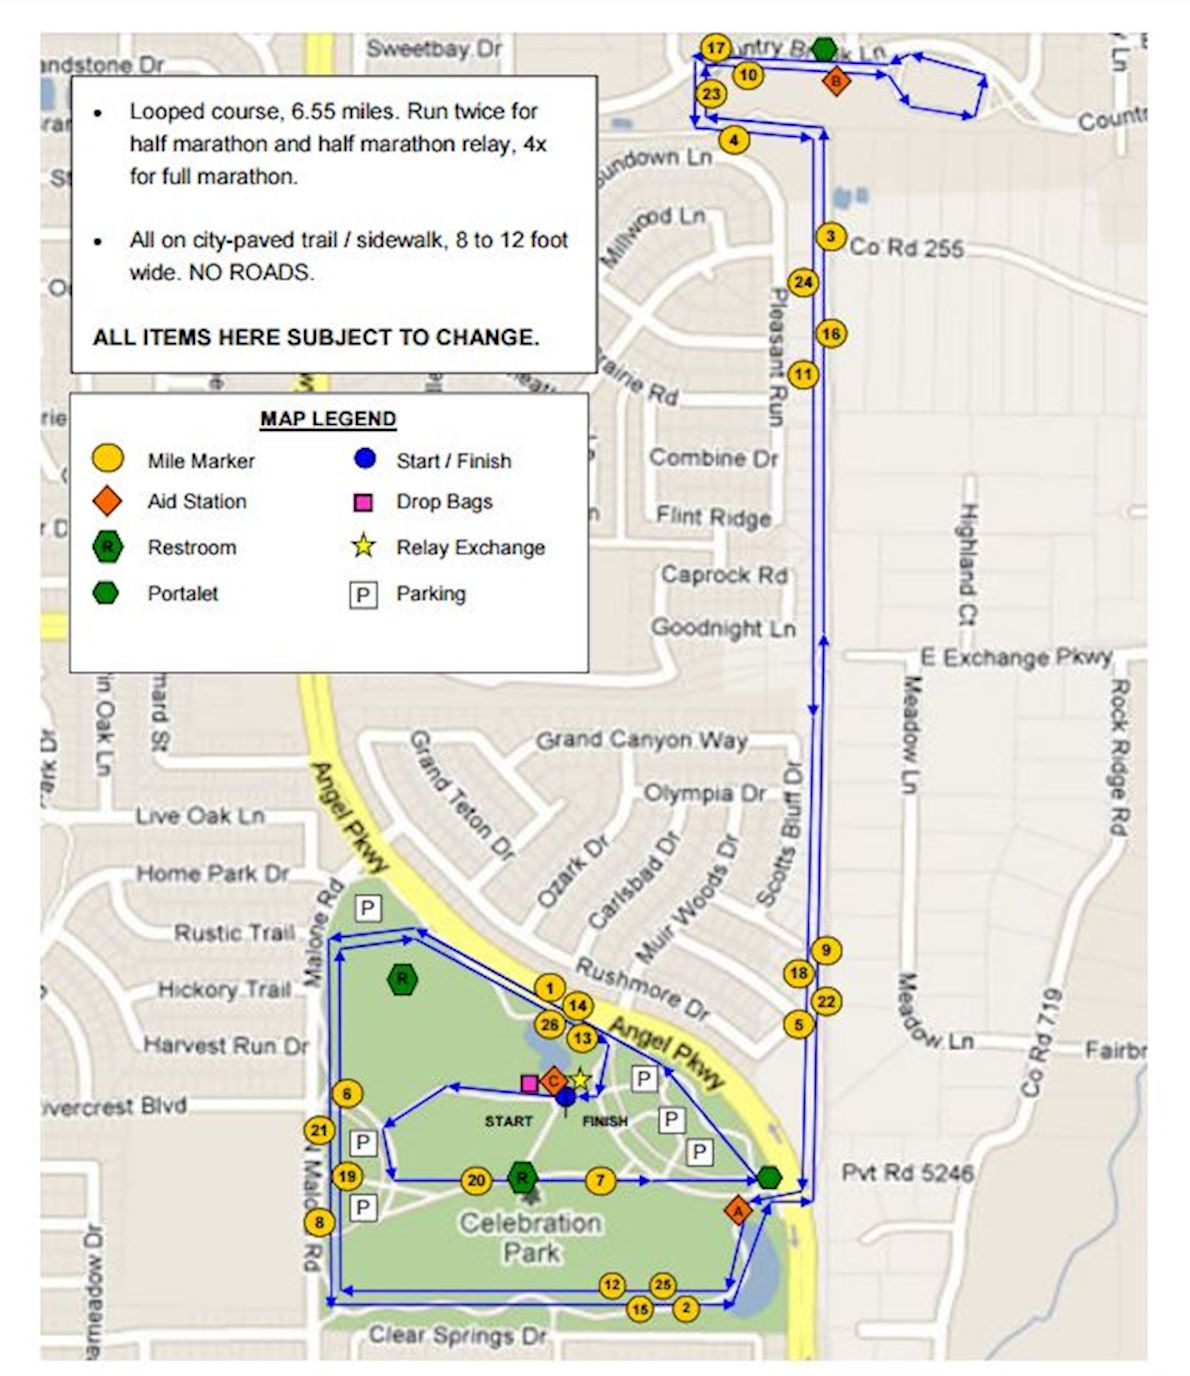 New Year's Double Marathon Route Map